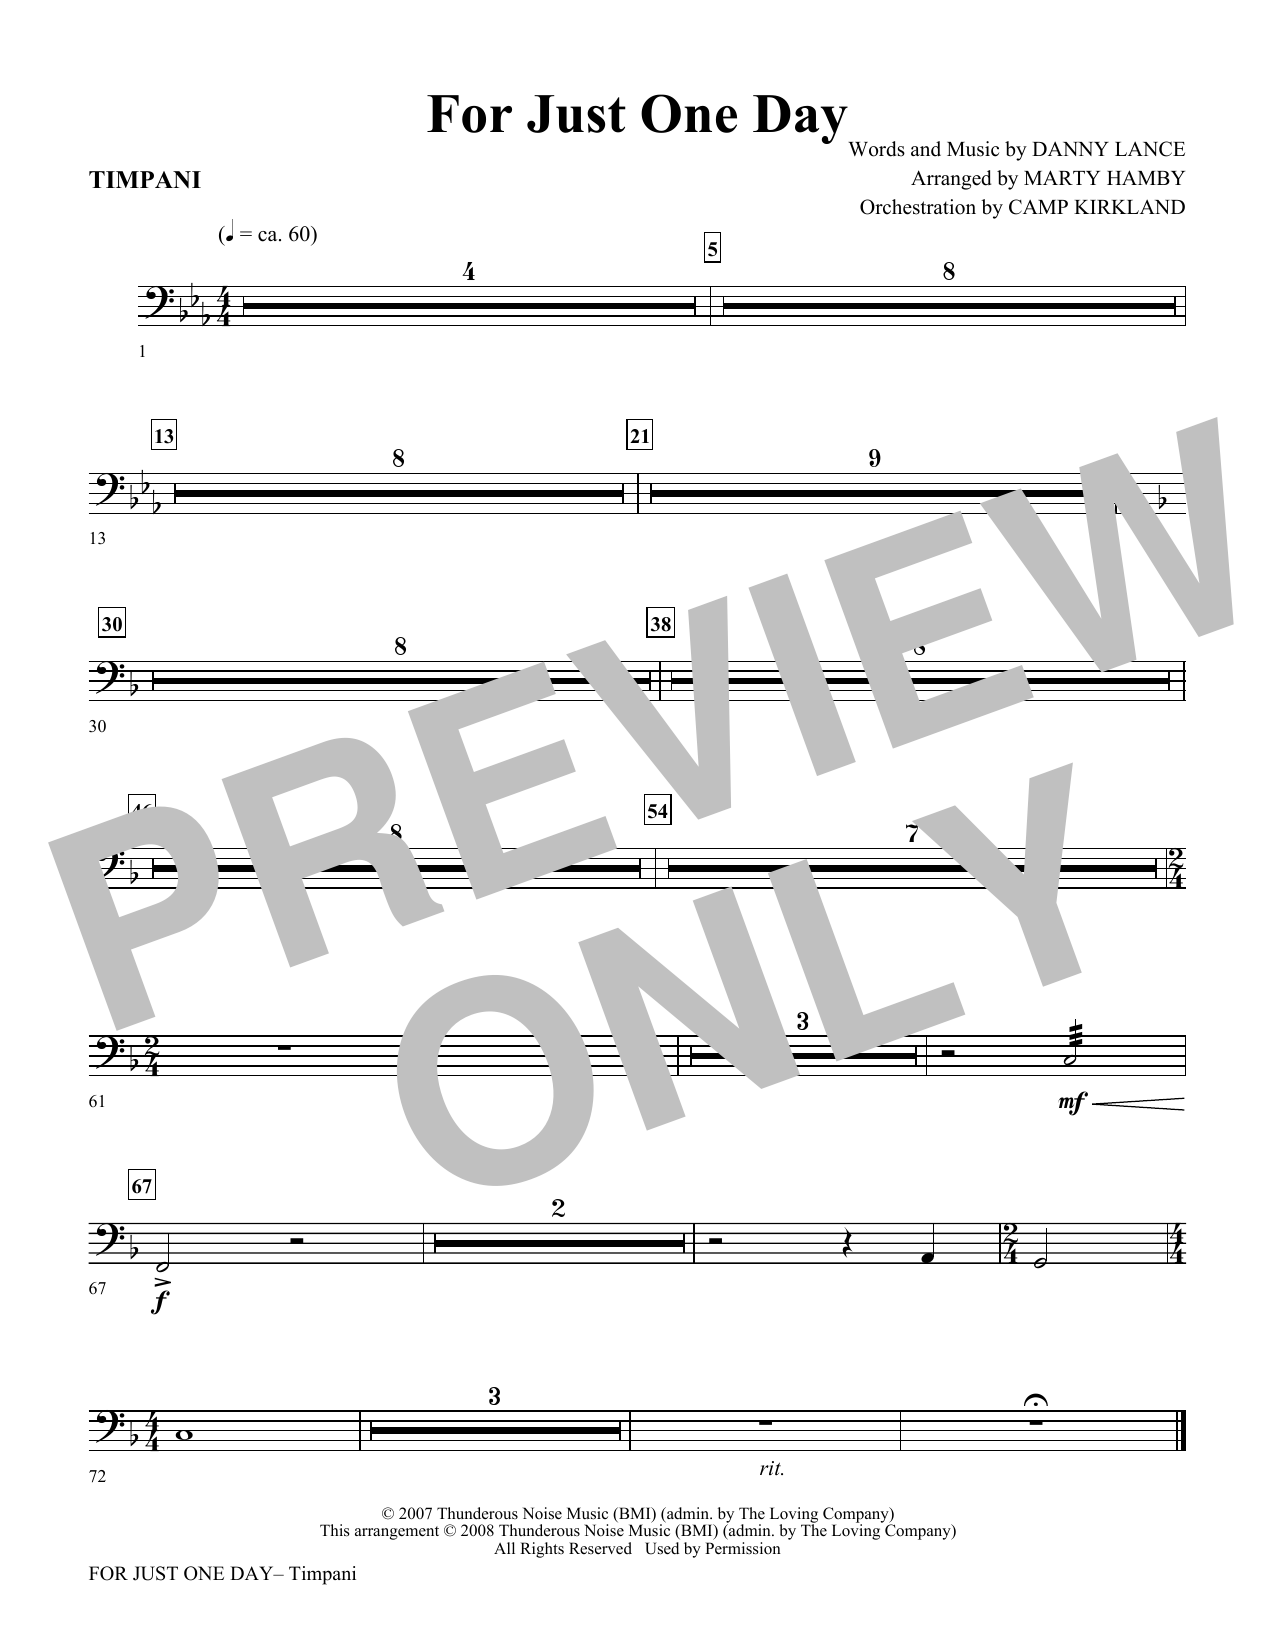 For Just One Day - Timpani Sheet Music